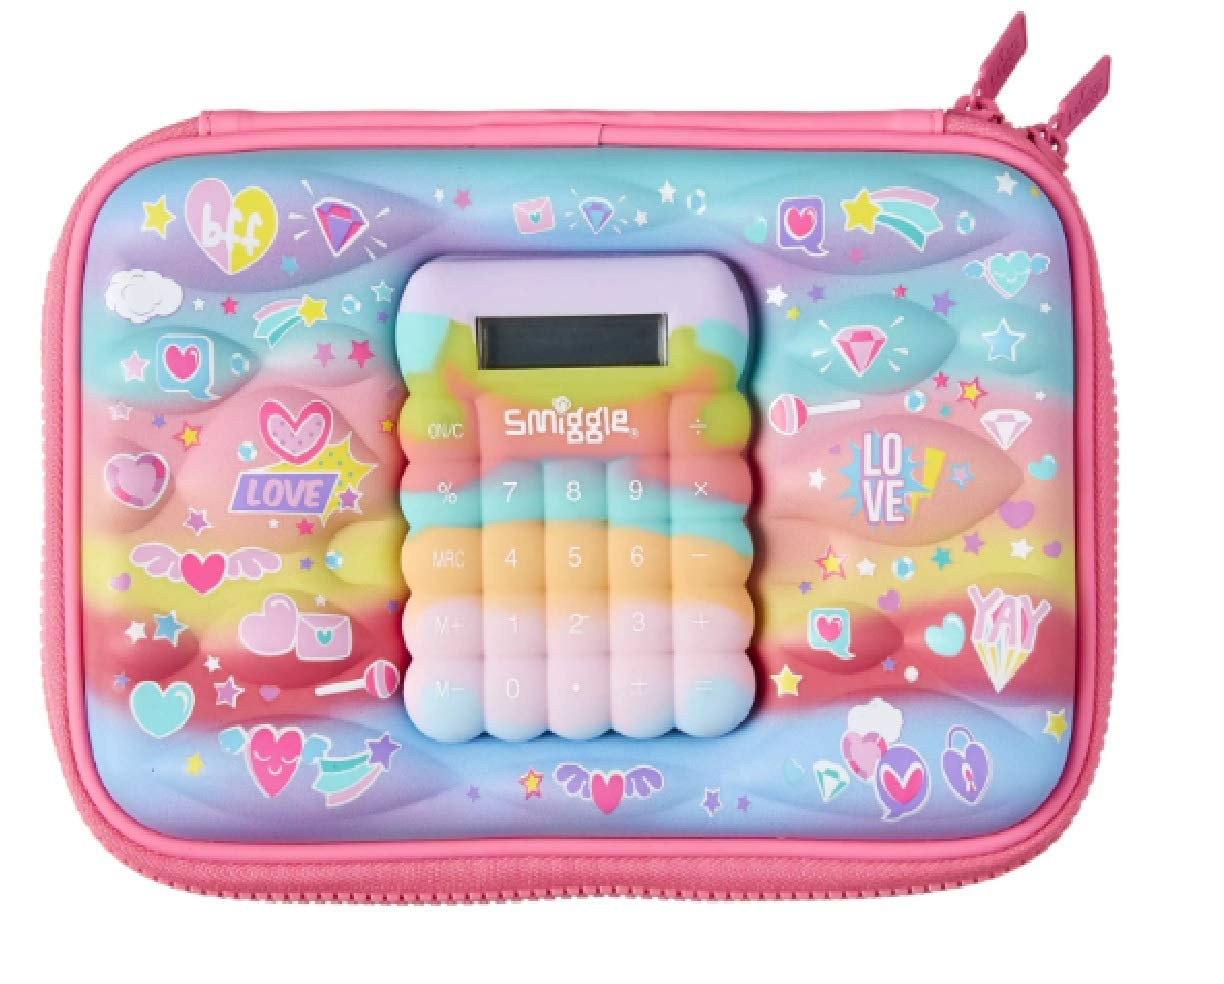 Smiggle Super Cute Calculator Blend Hardtop Pencil Case from Maxmillion London (Pink Love)